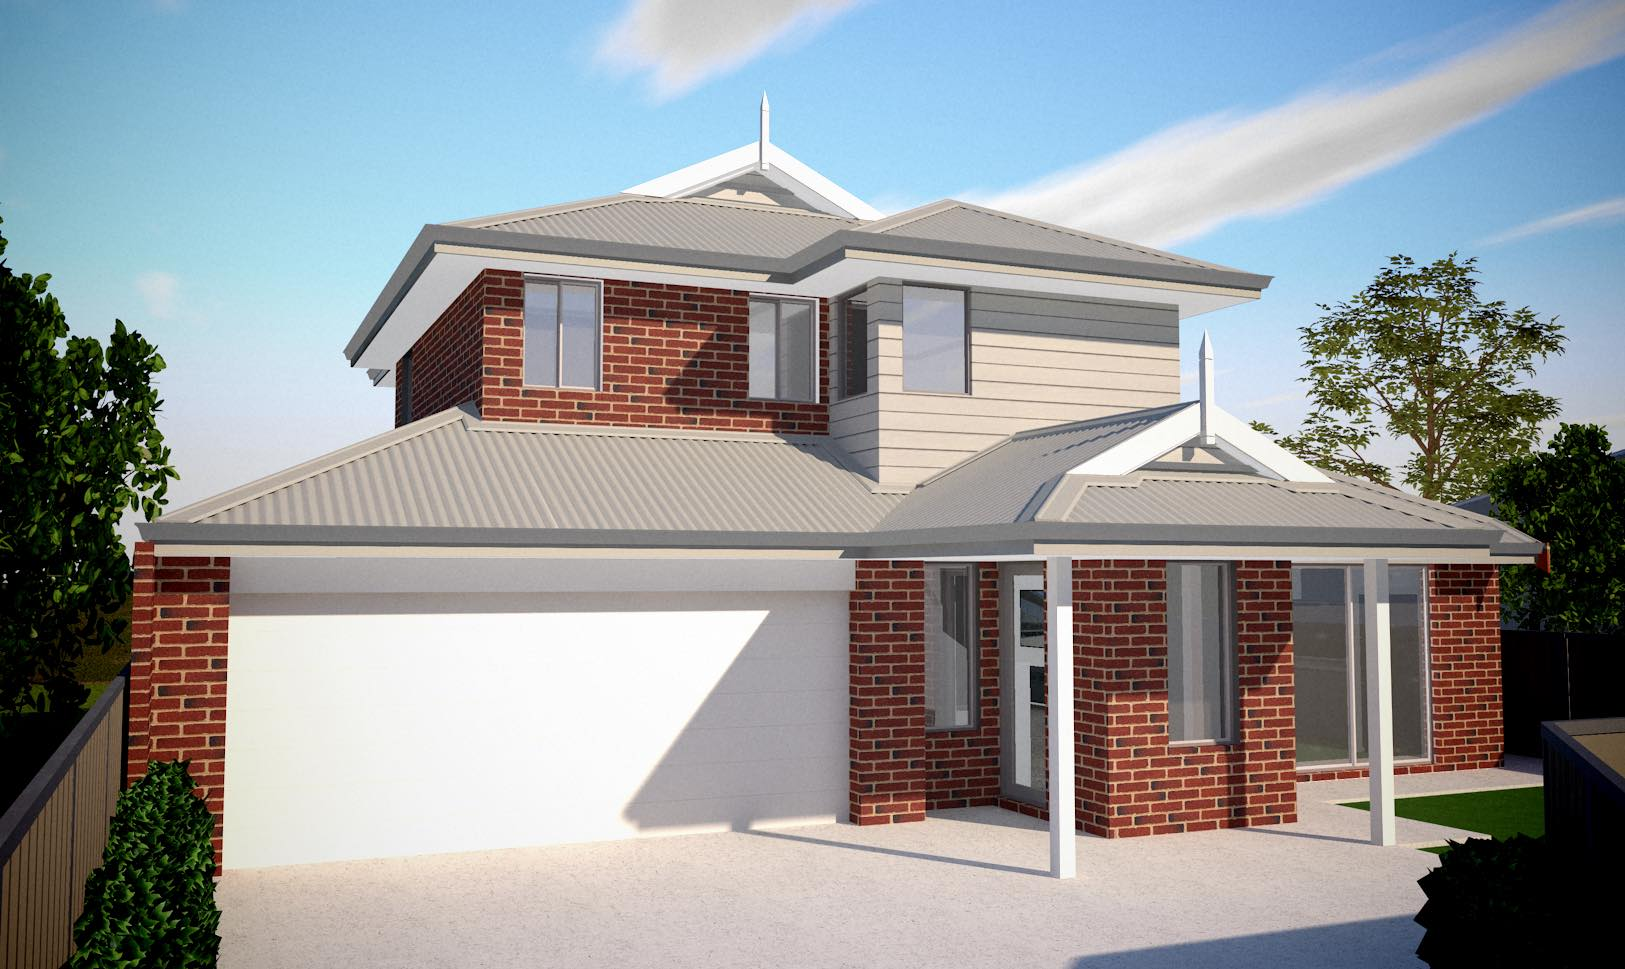 New Home Design - Seventh Avenue, Inglewood